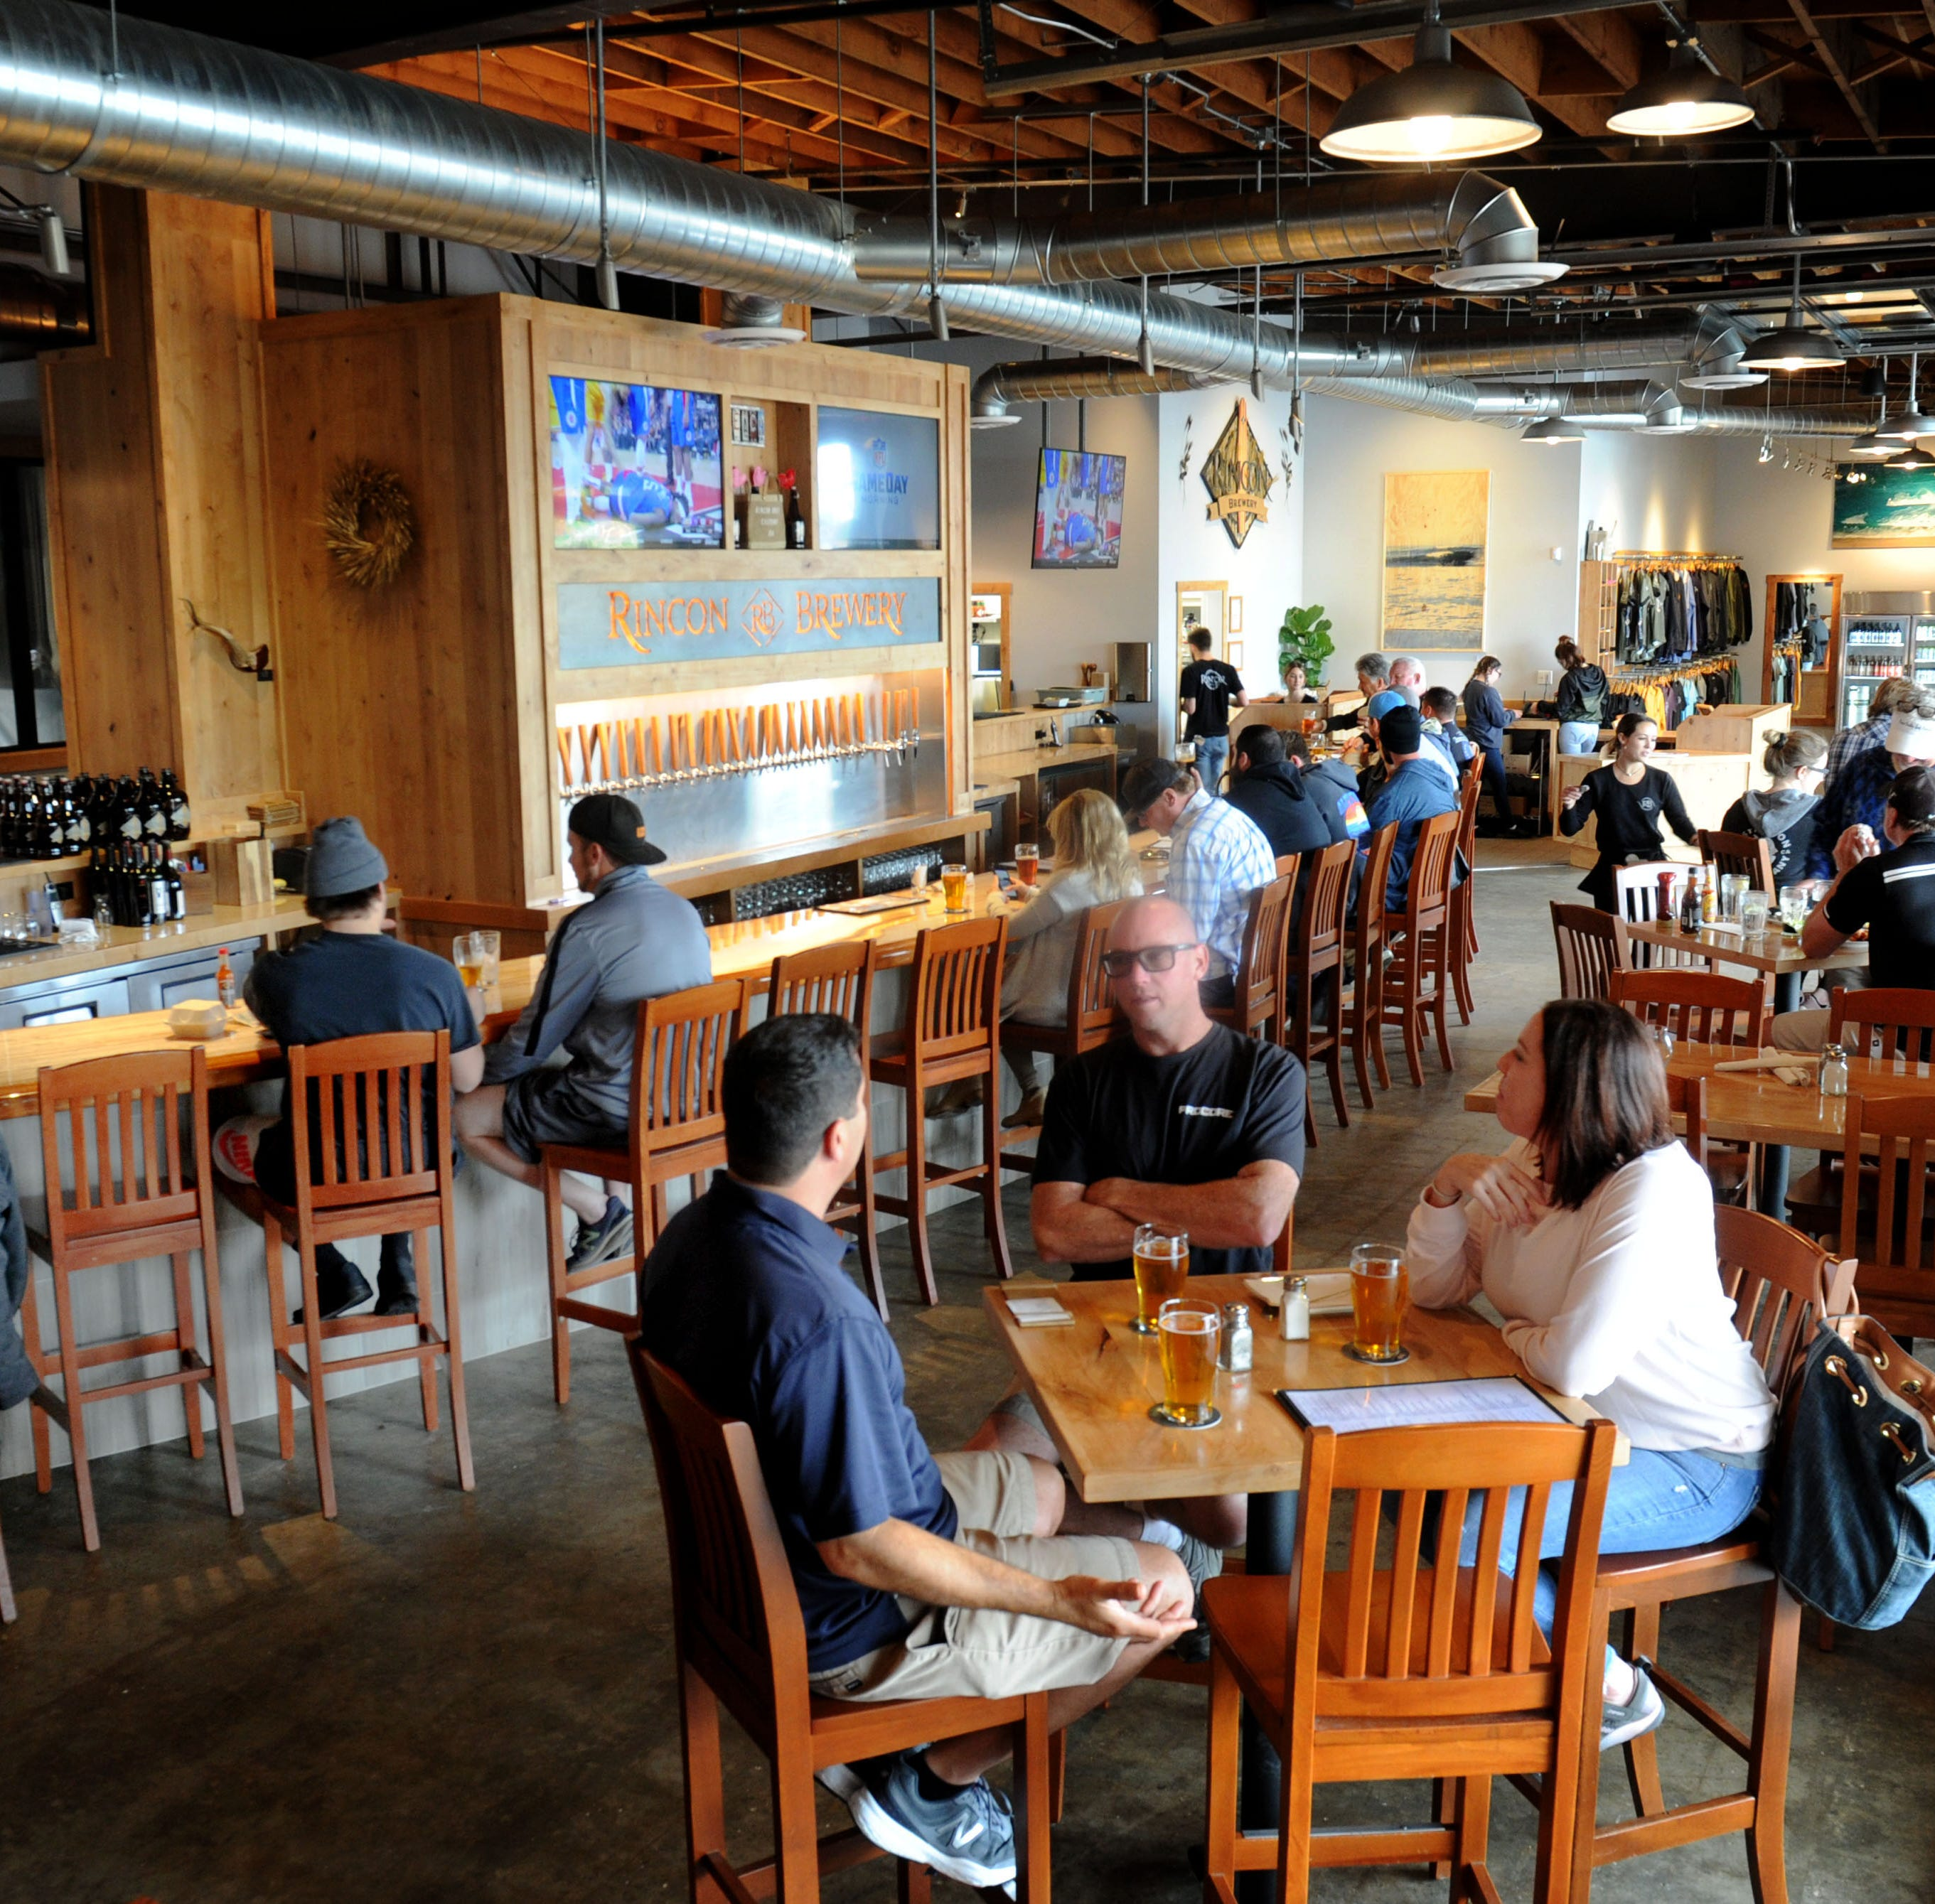 Restaurant review: Ventura's Rincon Brewery offers countless options for brew fans